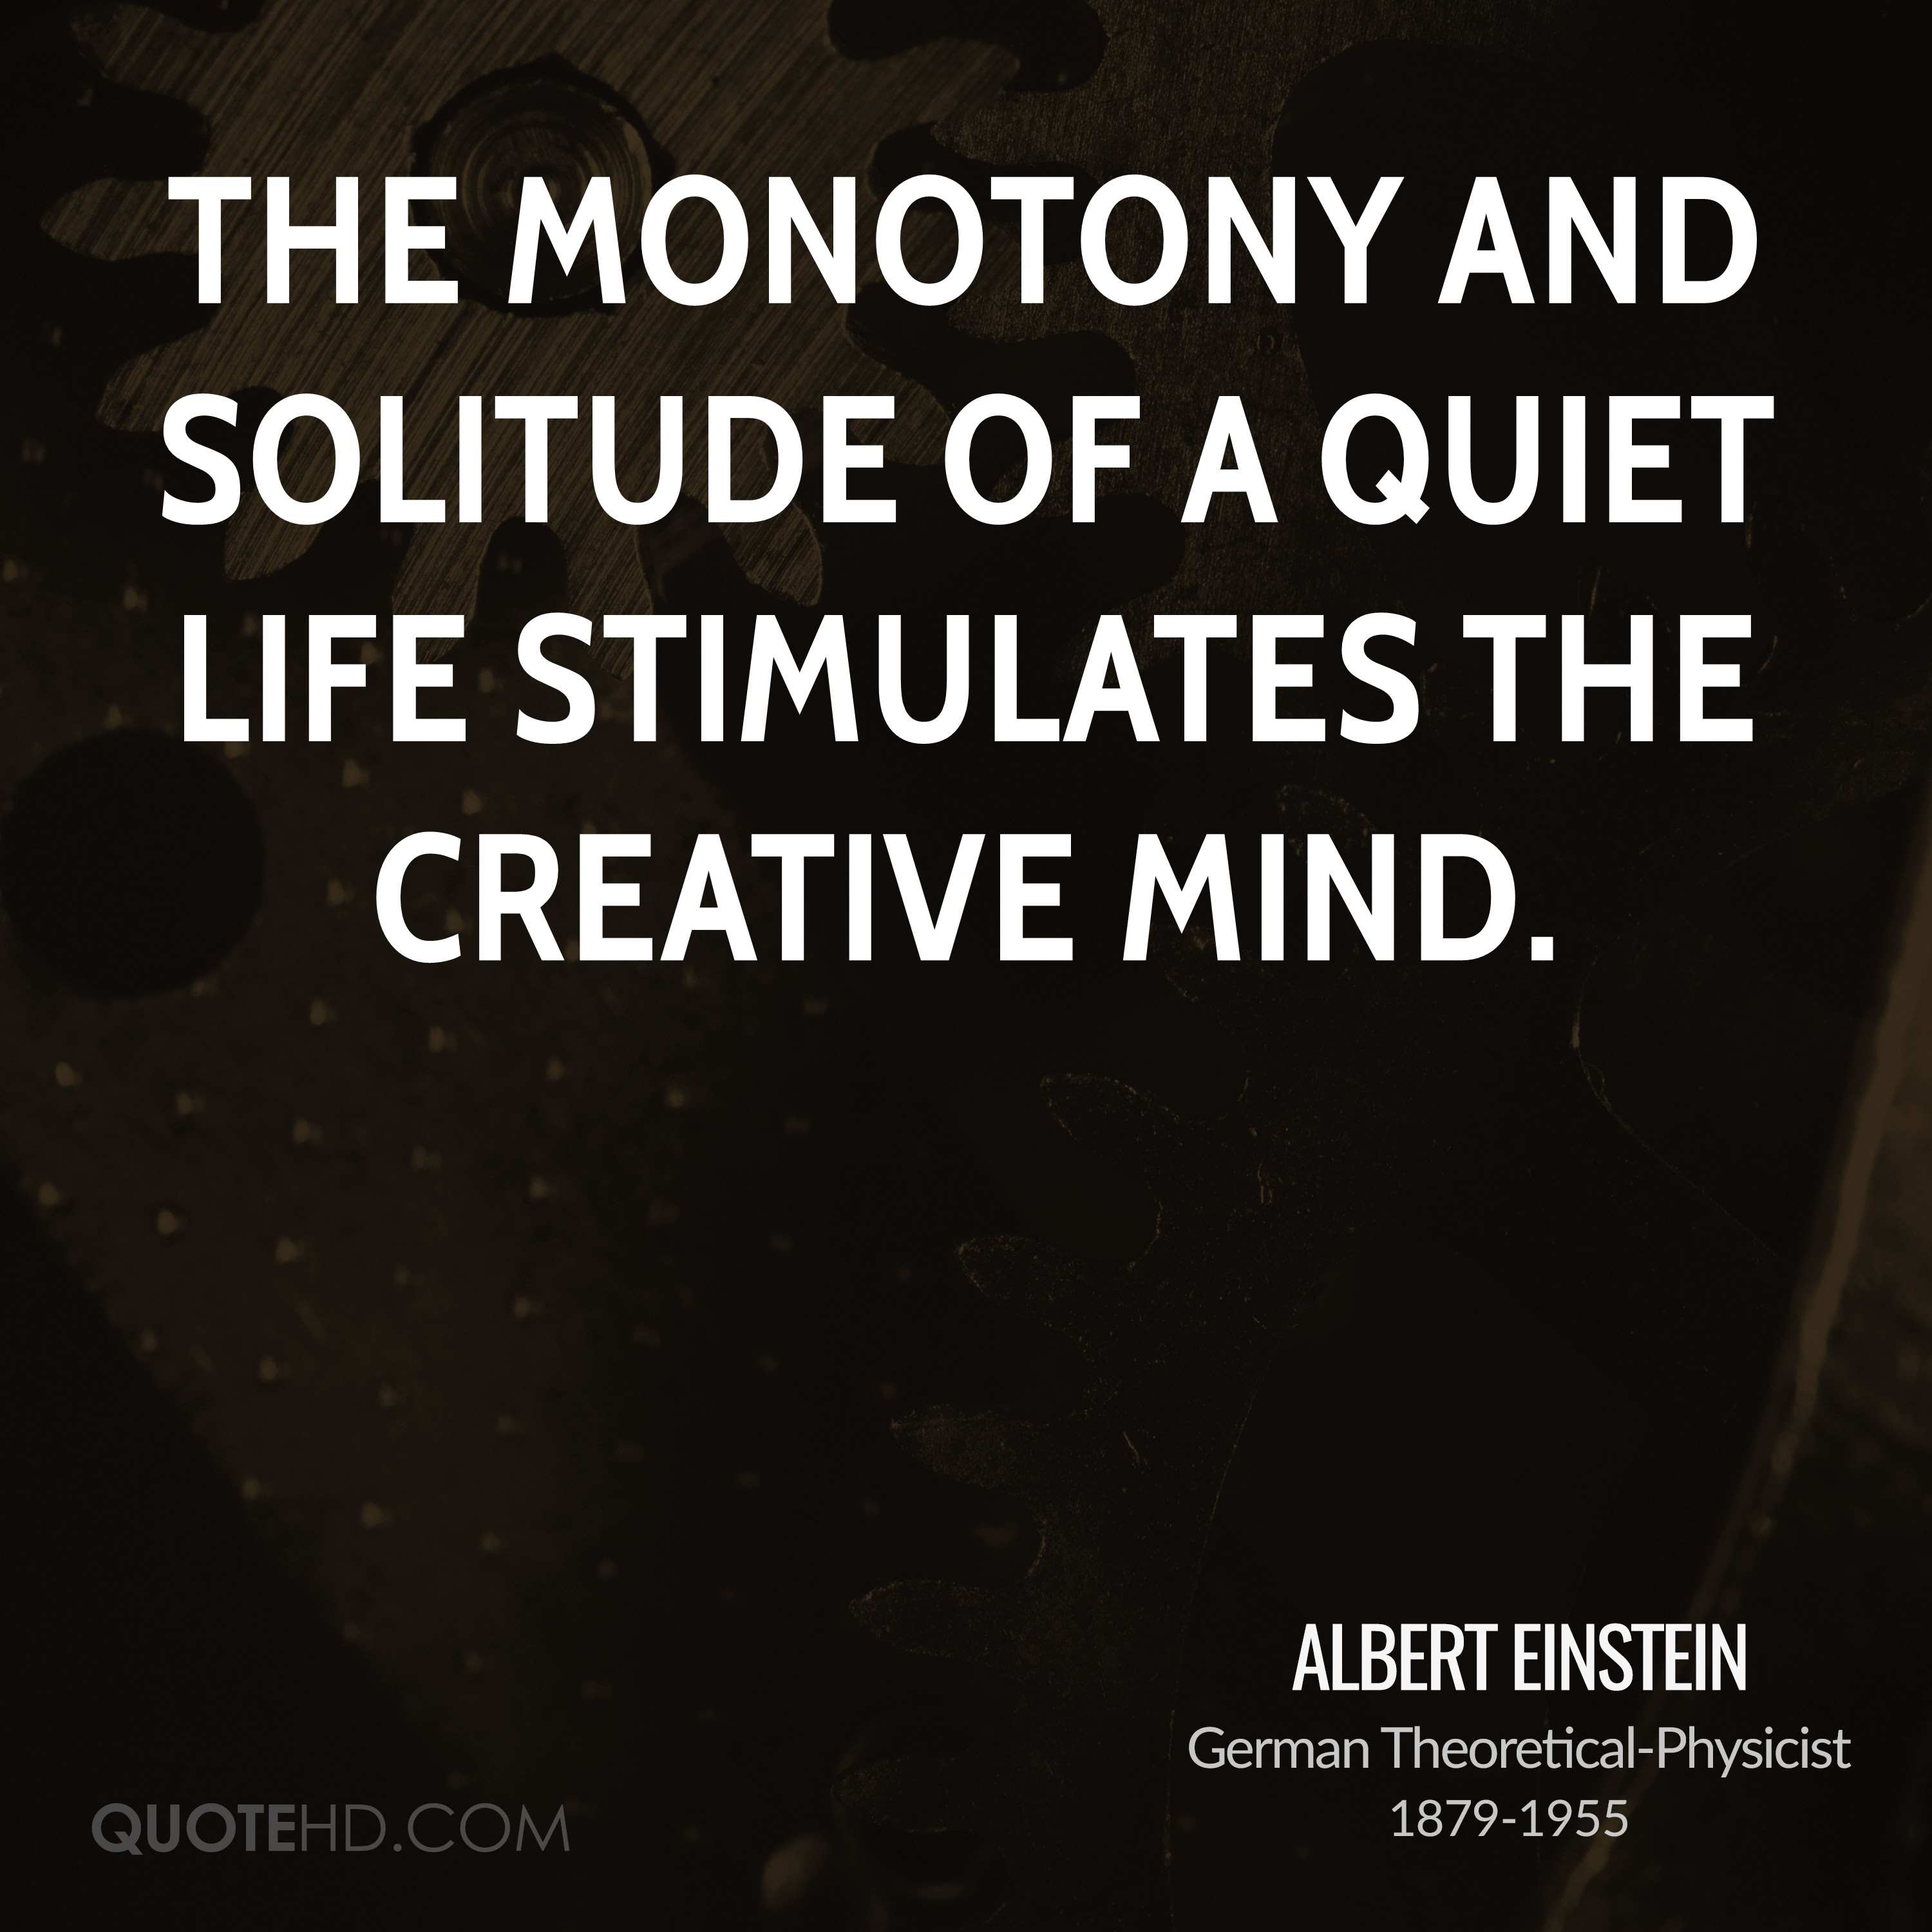 Albert Einstein Life Quotes Quotehd